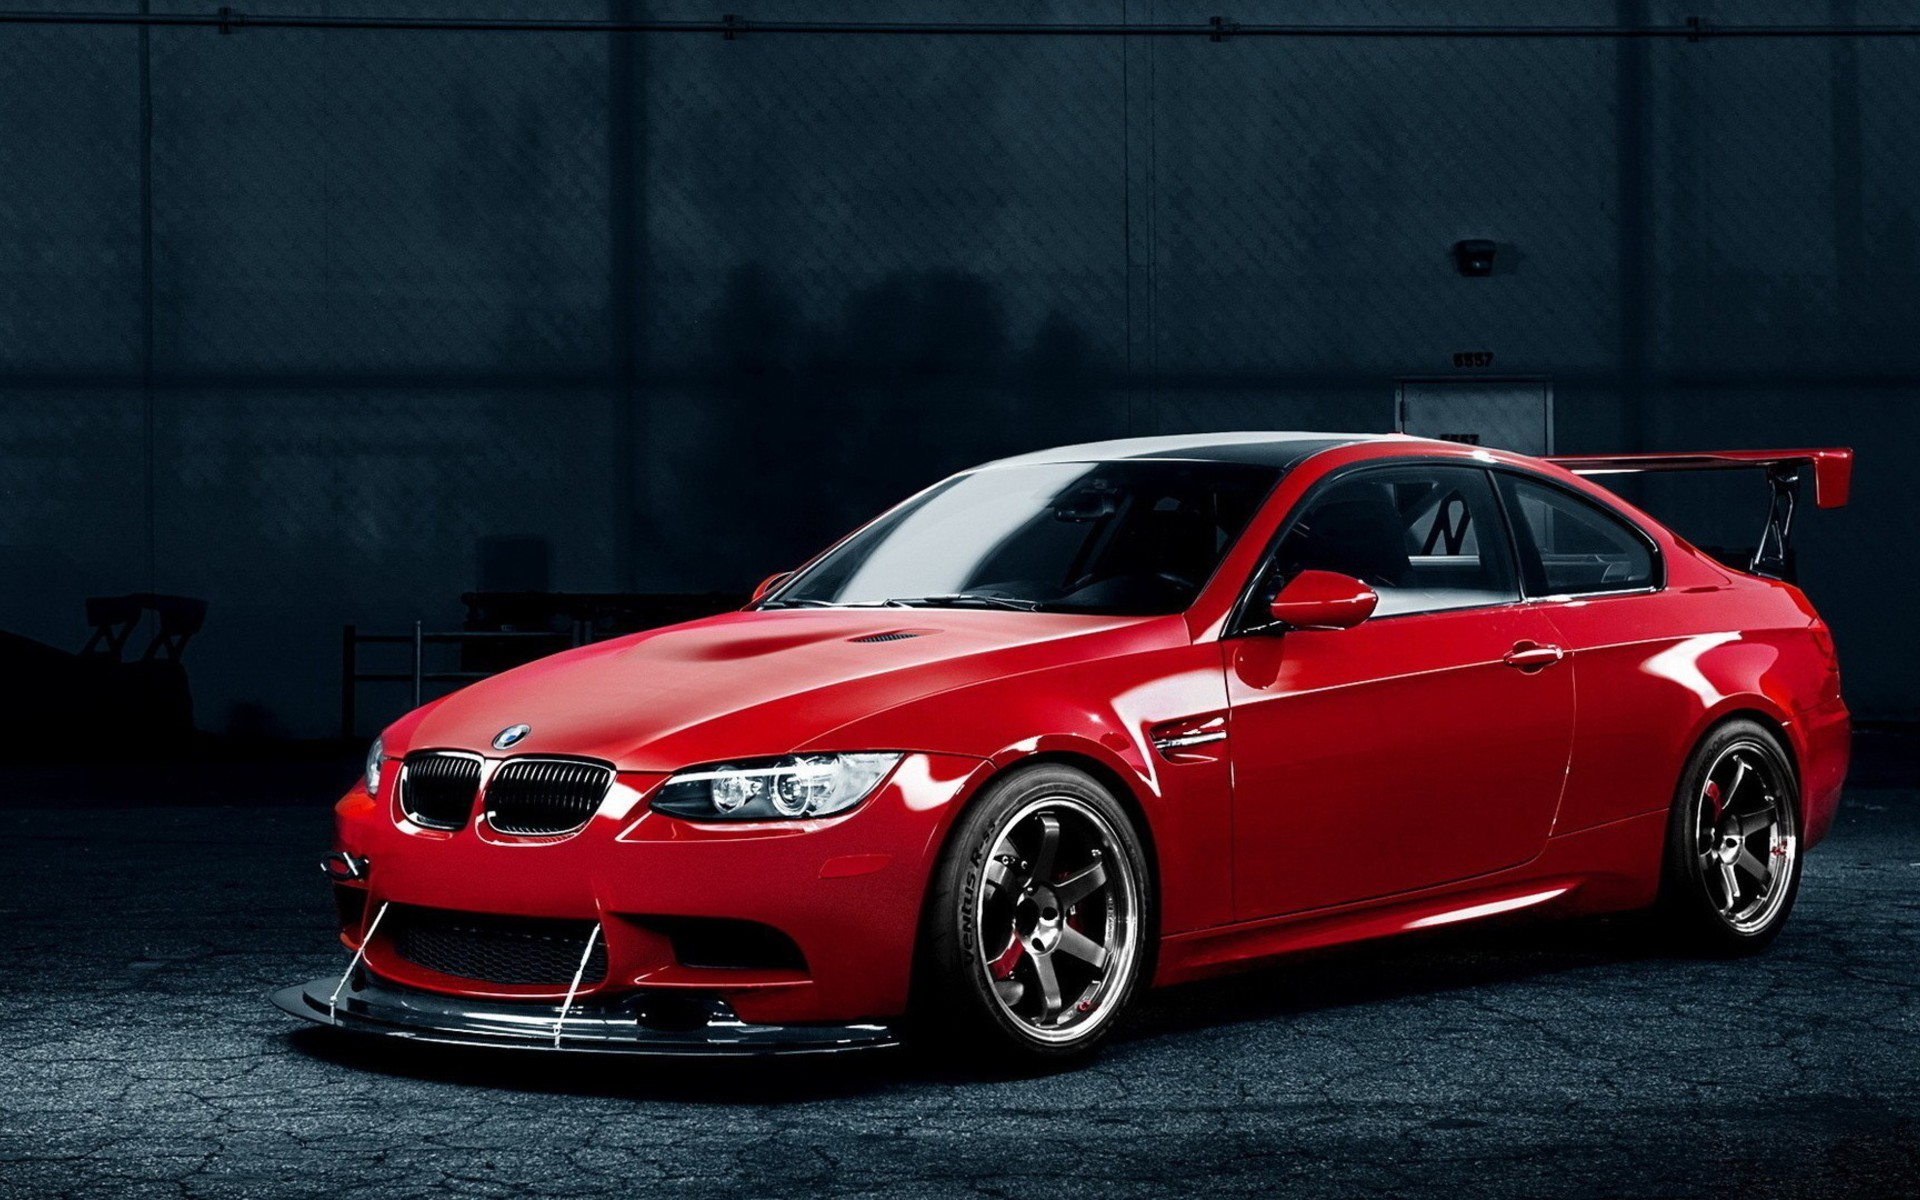 bmw m3 cars racing red tuning wallpaper | allwallpaper.in #3333 | pc